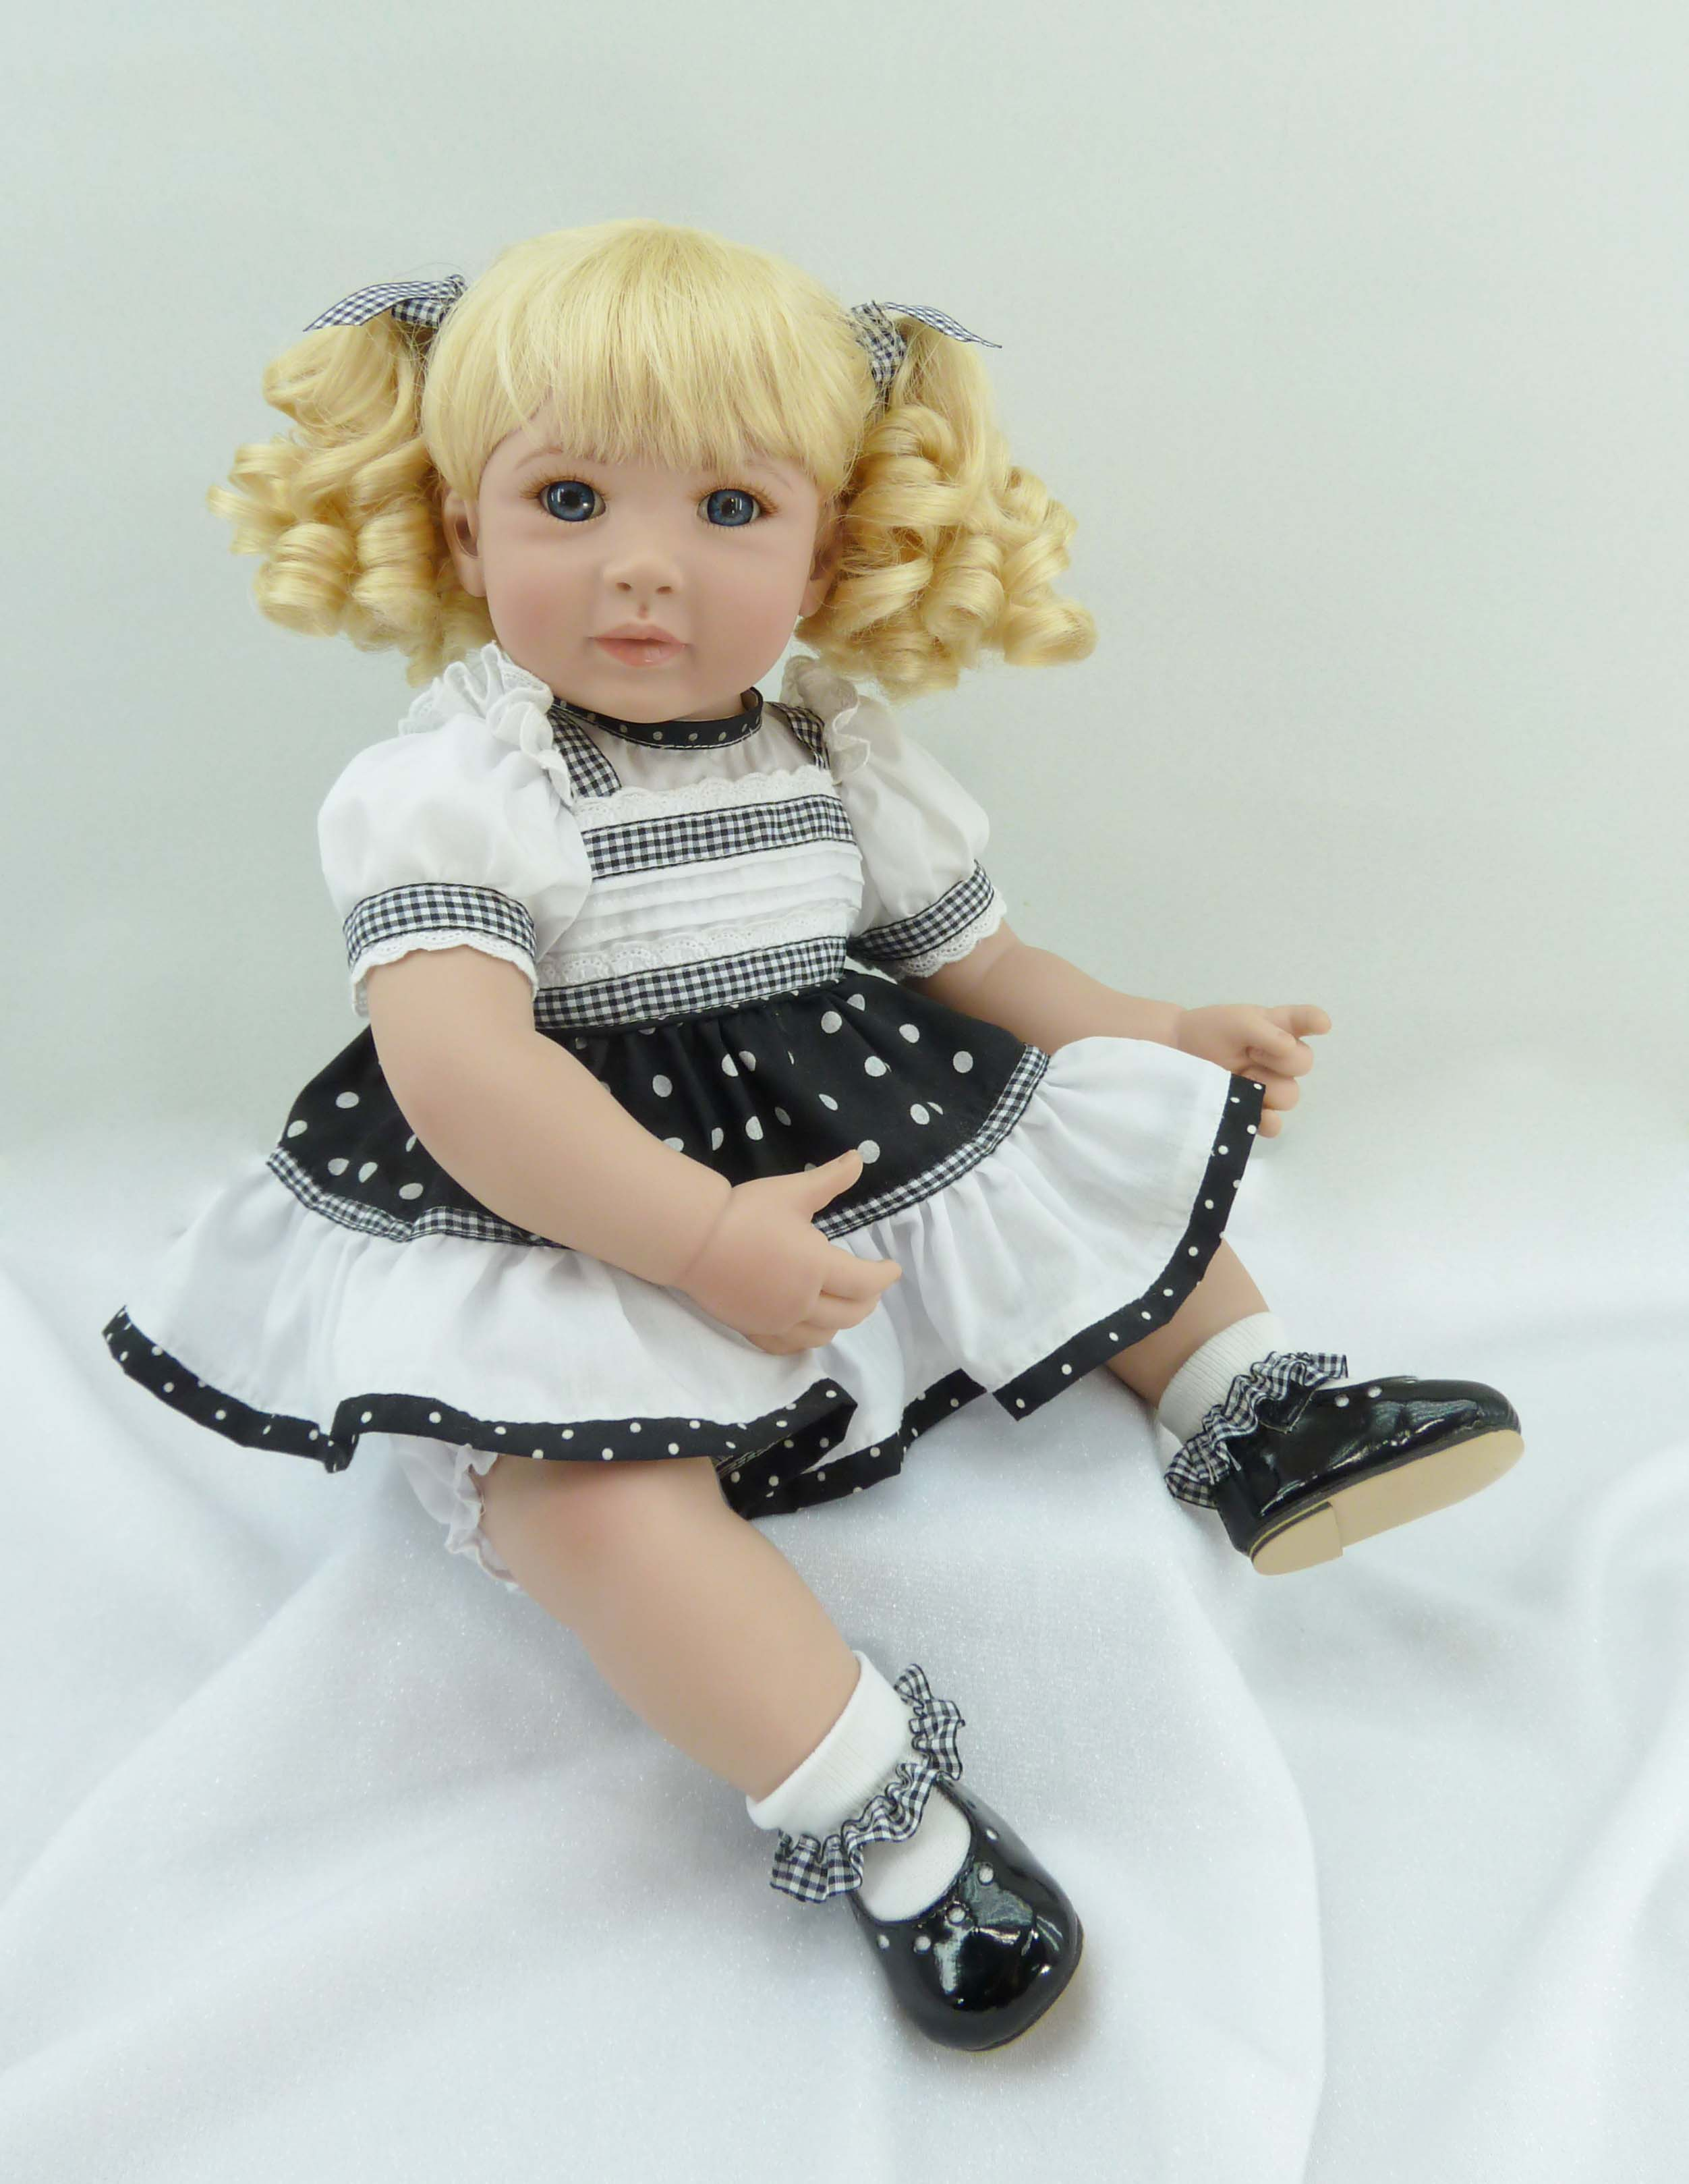 Reborn Baby Doll Lifelike Girls Vinyl Baby Toys Cute Soft Reborn Bebe Toddler Collection Dolls Fashion Gifts for Christmas little cute flocking doll toys kawaii mini cats decoration toys for girls little exquisite dolls best christmas gifts for girls